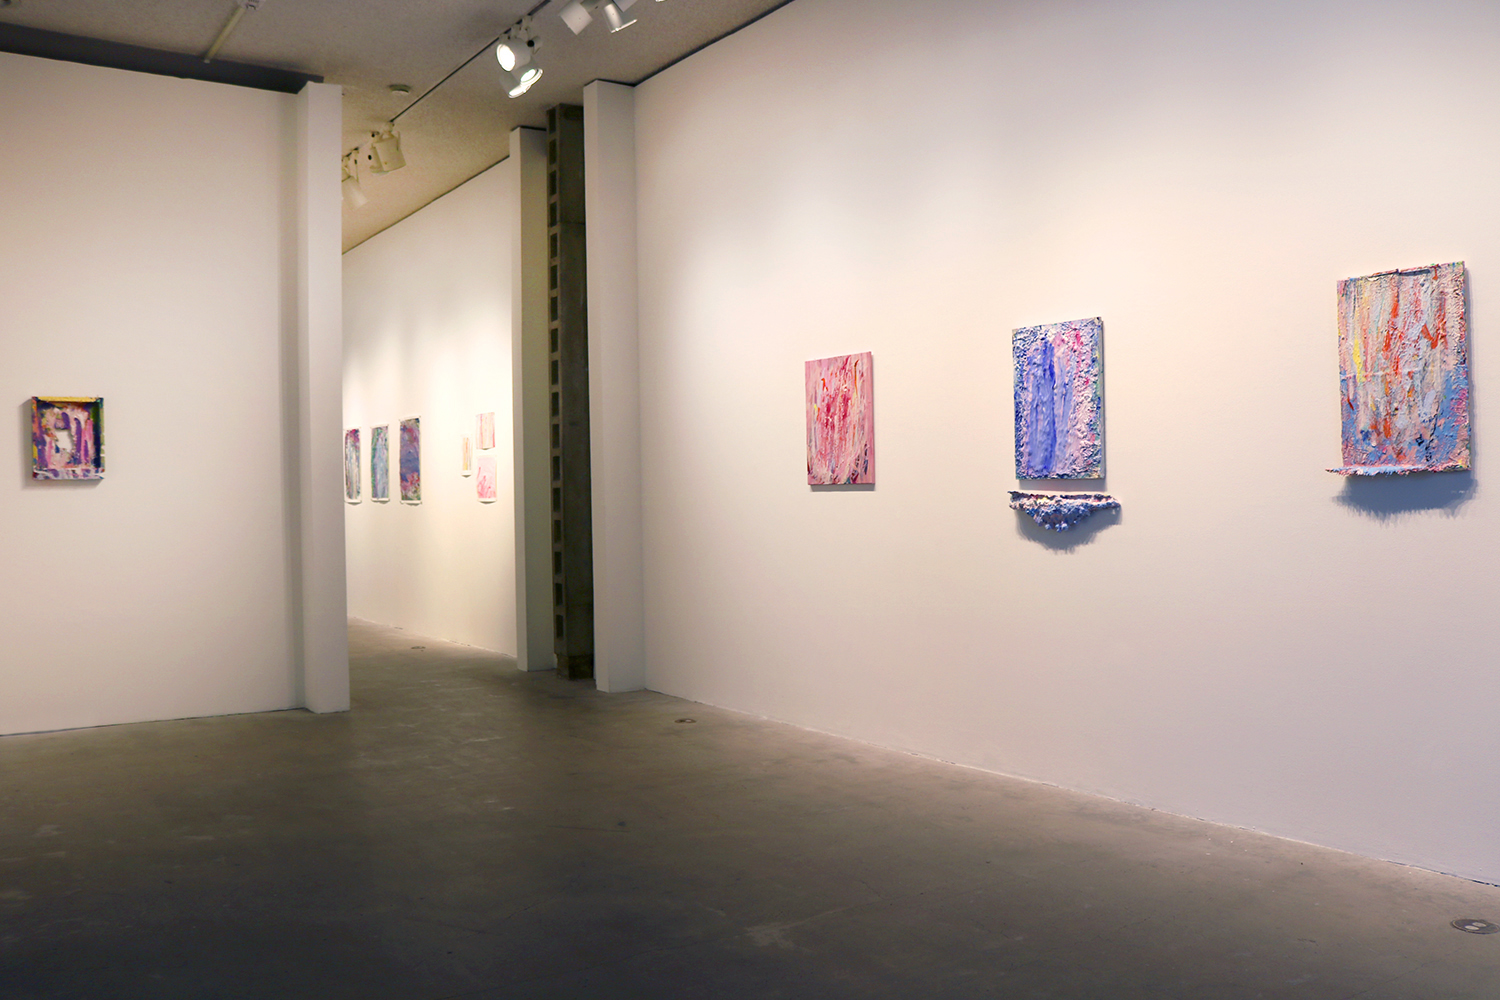 This is a color photograph of a room in the Los Angeles Municipal Art Gallery. The walls of the room are white-colored and lined with abstract paintings by Vanessa McConnell.